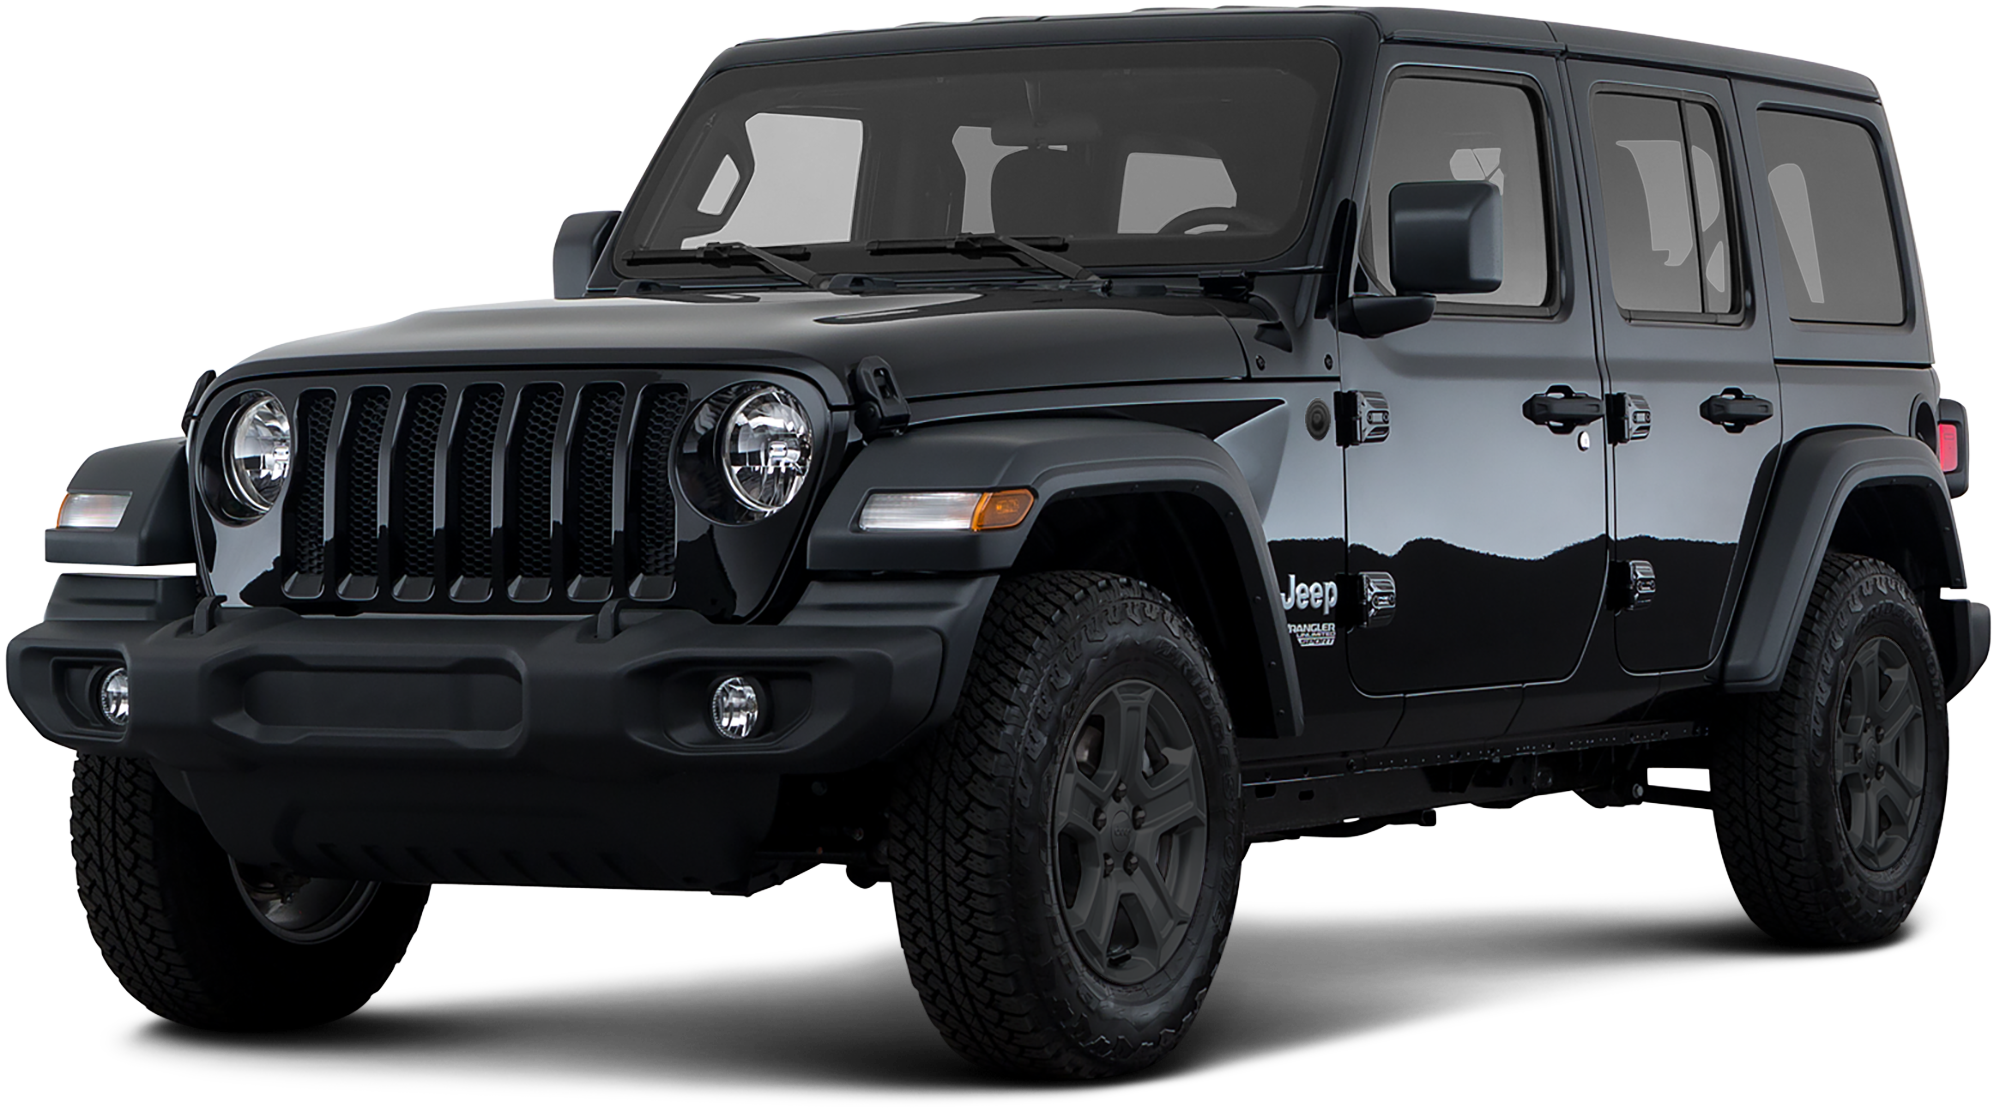 2021 jeep wrangler unlimited incentives, specials & offers